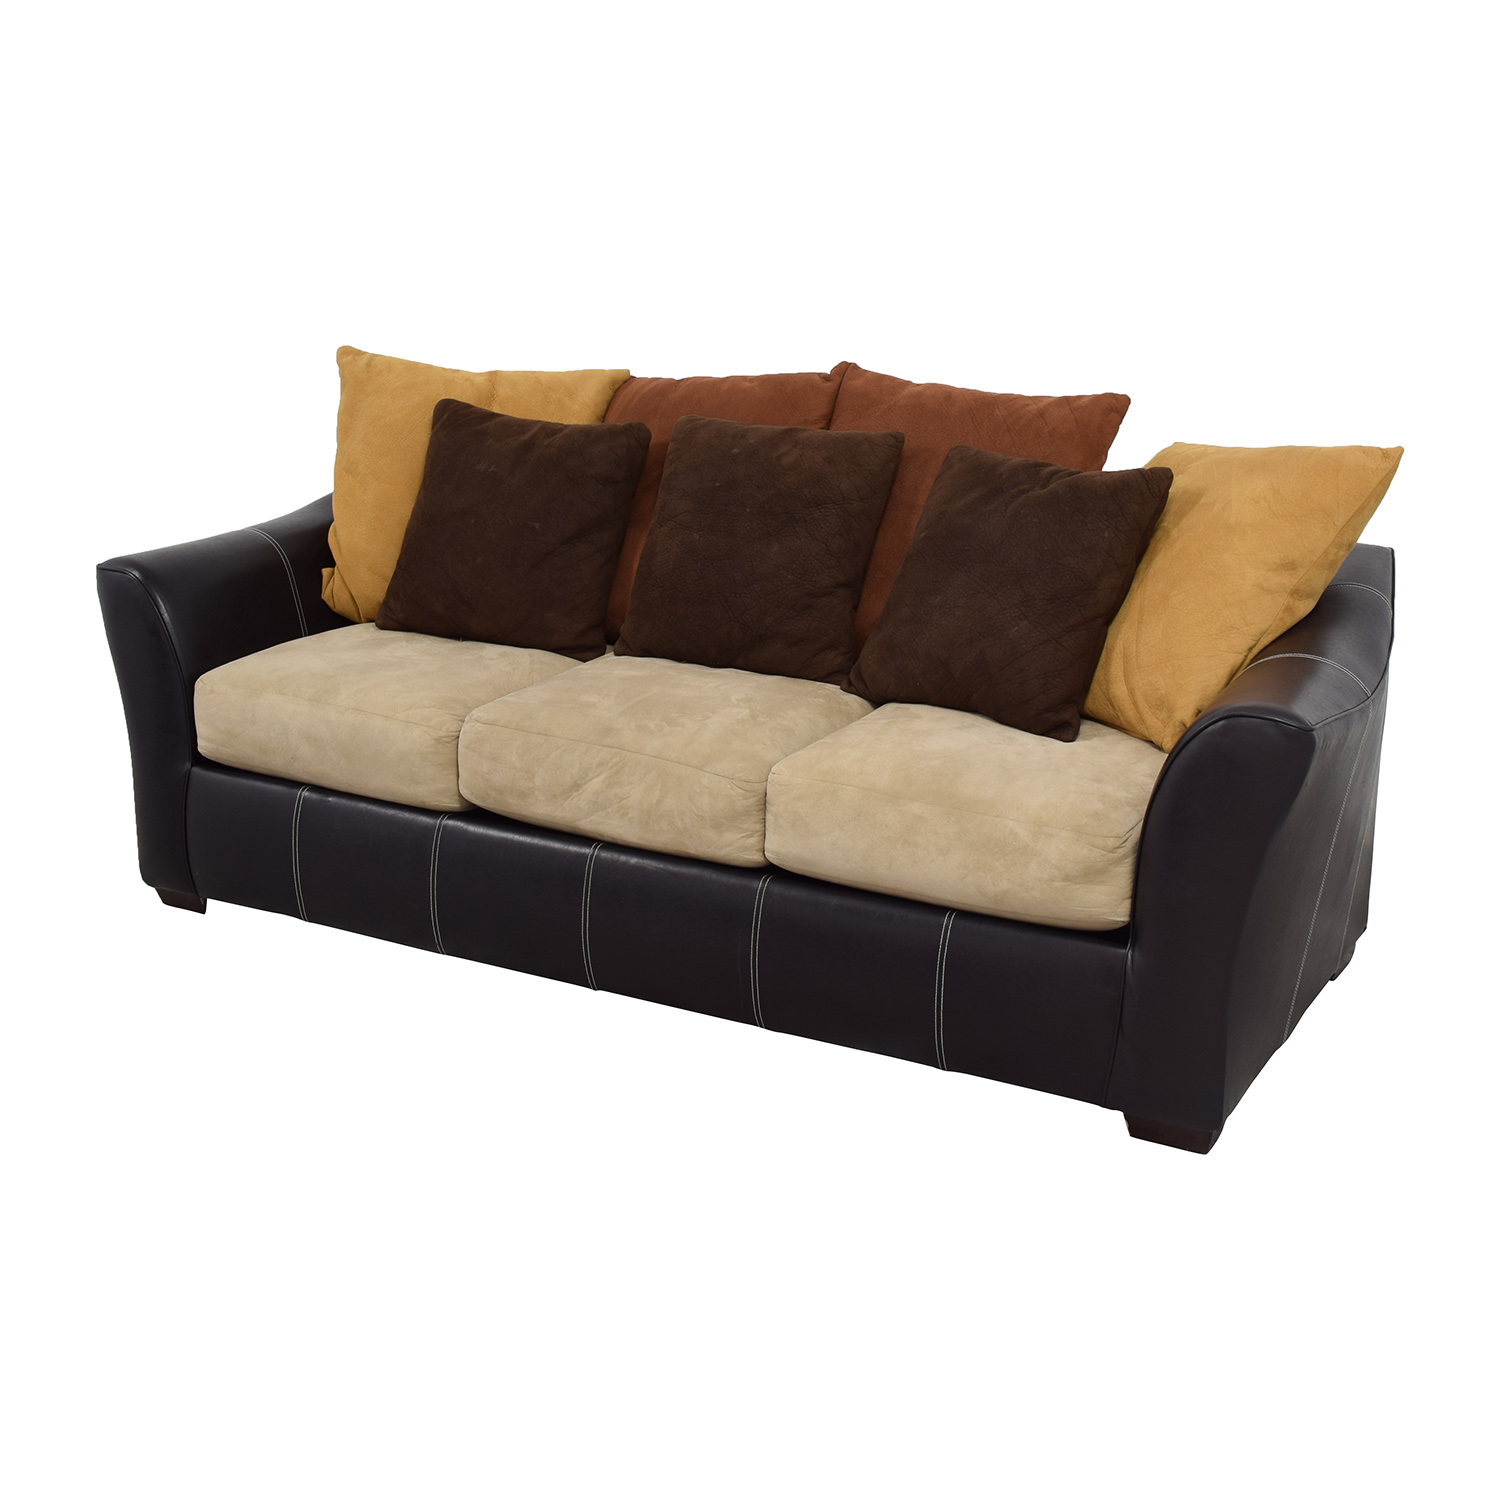 Second Hand Leather Sofas Somerset: Brown Leather Frame With Earth Tone Cushion Sofa